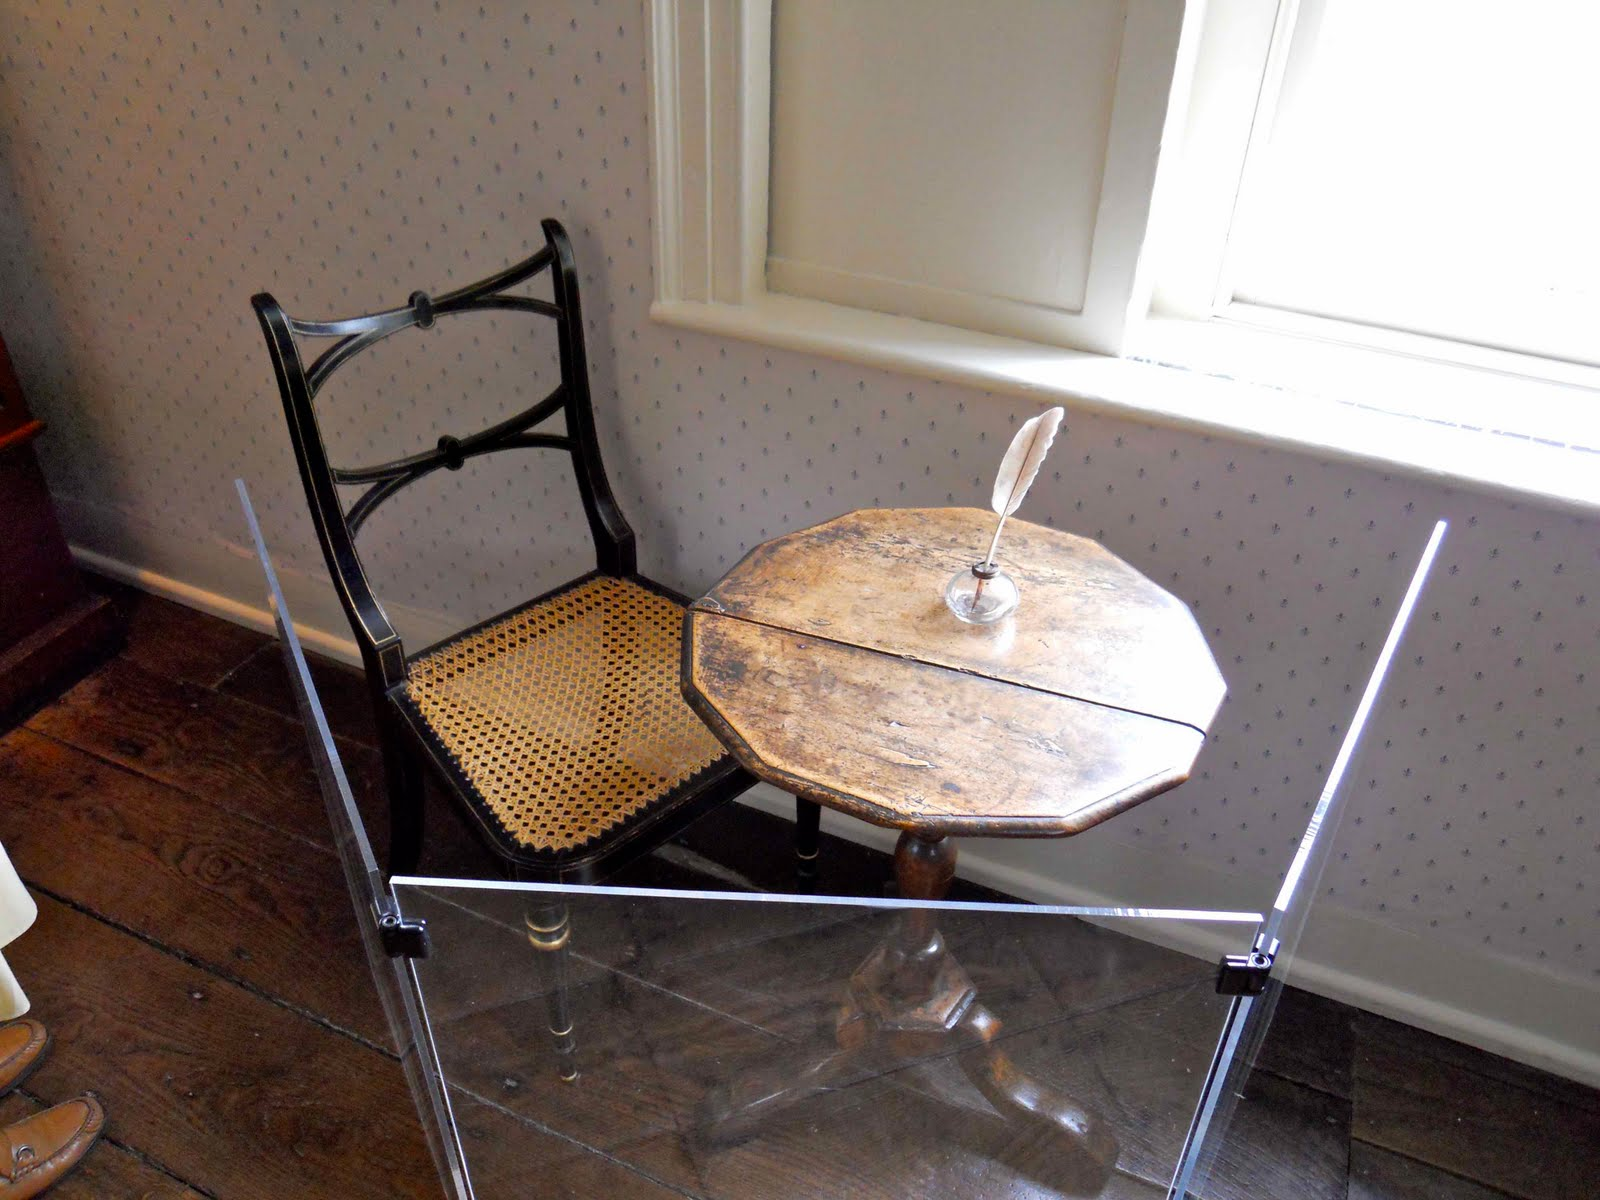 chair for writing desk big round living room chairs jane austen's table and chair, chawton cottage, uk, c. 1809 | the core curriculum